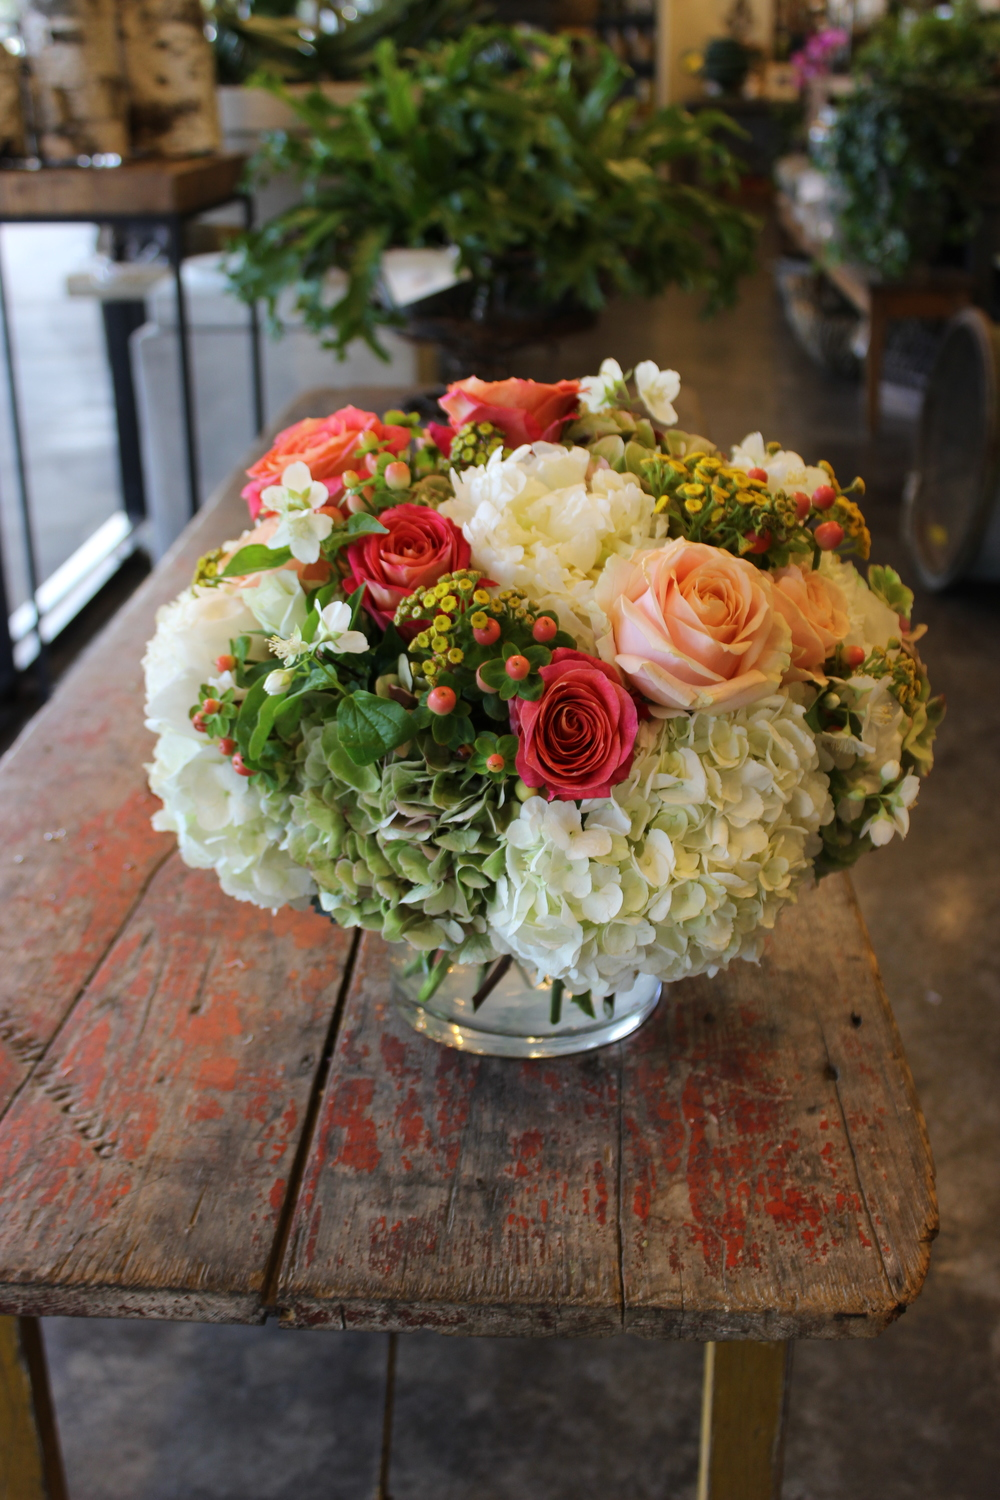 Low arrangement of seasonal fresh flowers starting at $100.00.